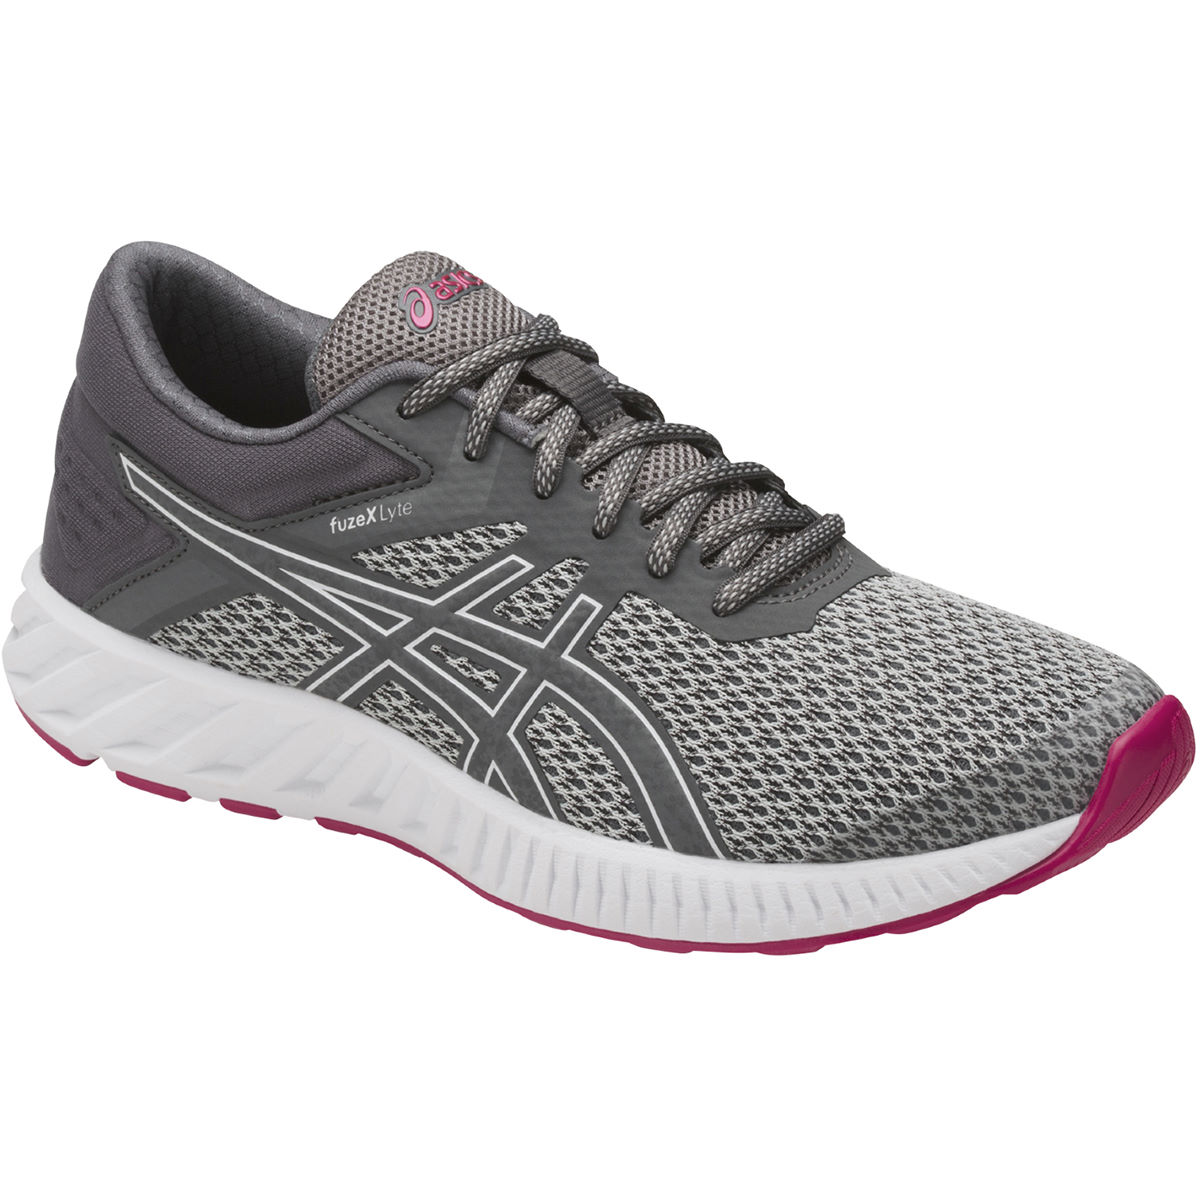 Chaussures Femme Asics Fuze X Lyte 2 - UK 4 Mid Grey/Carbon//Cos